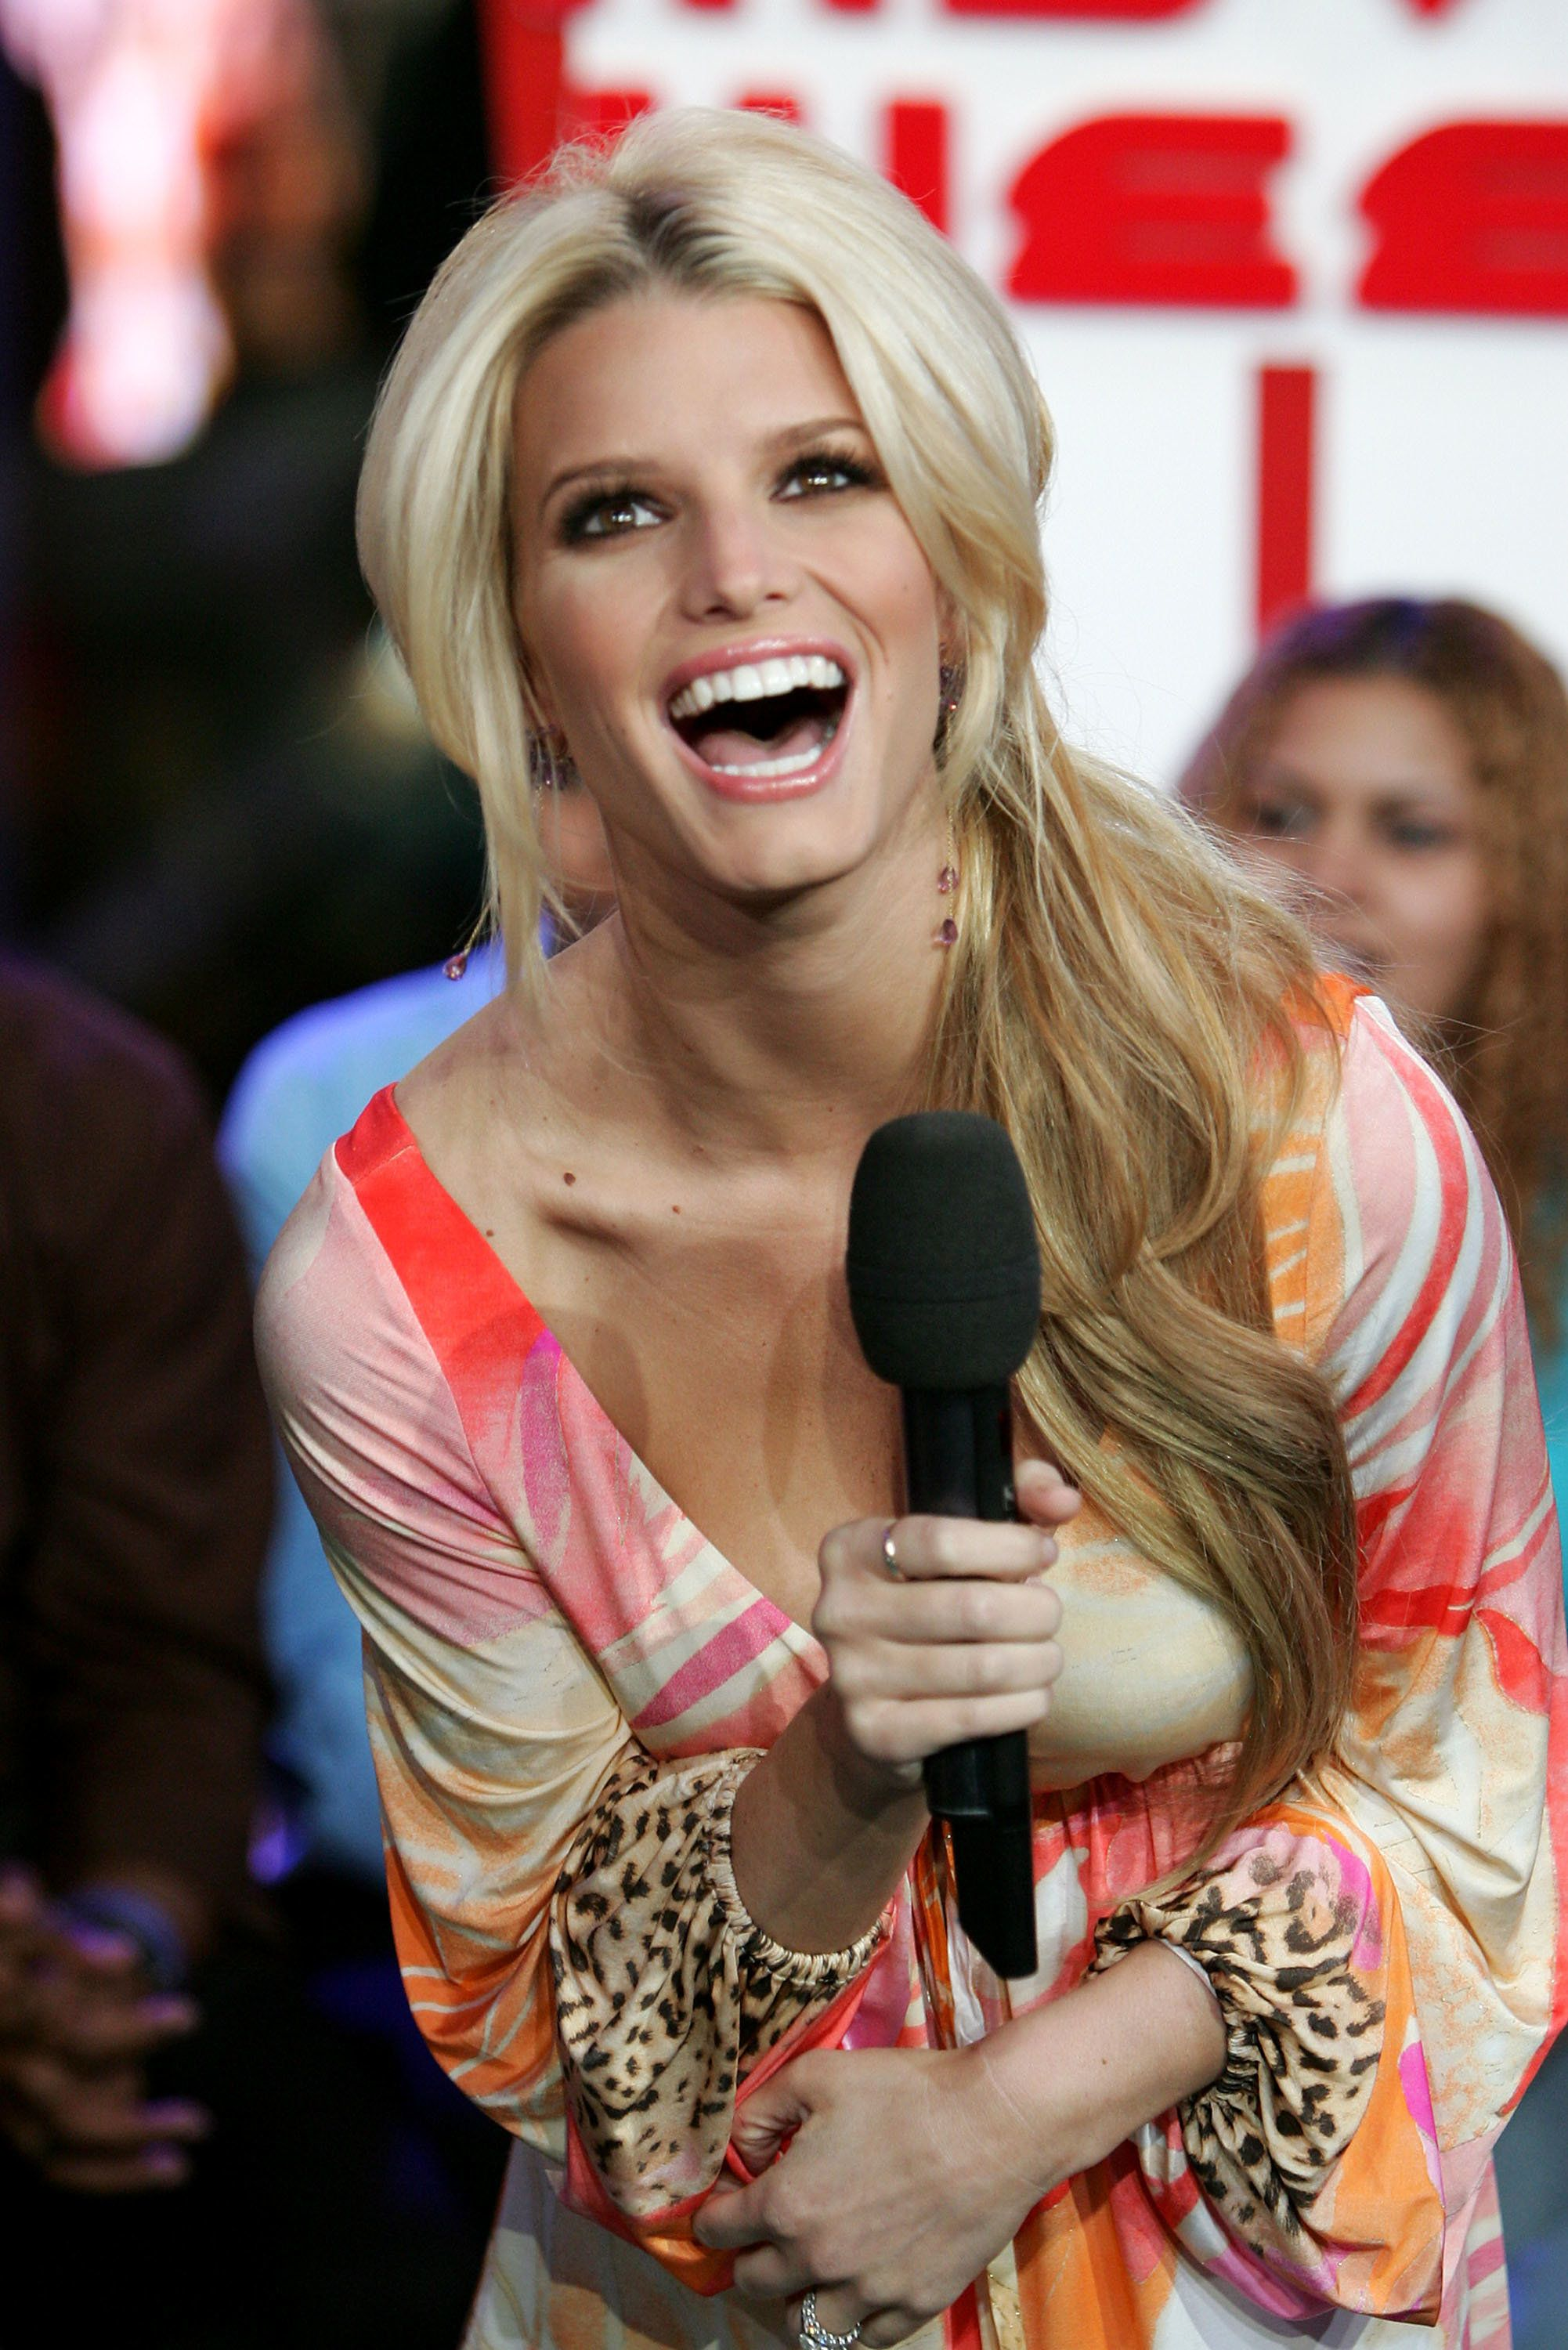 NEW YORK - NOVEMBER 29:  (U.S. TABS OUT)  Singer Jessica Simpson appears on stage during MTV's Total Request Live on November 29, 2004 at the MTV Times Square Studios, in New York City. (Photo by Peter Kramer/Getty Images)